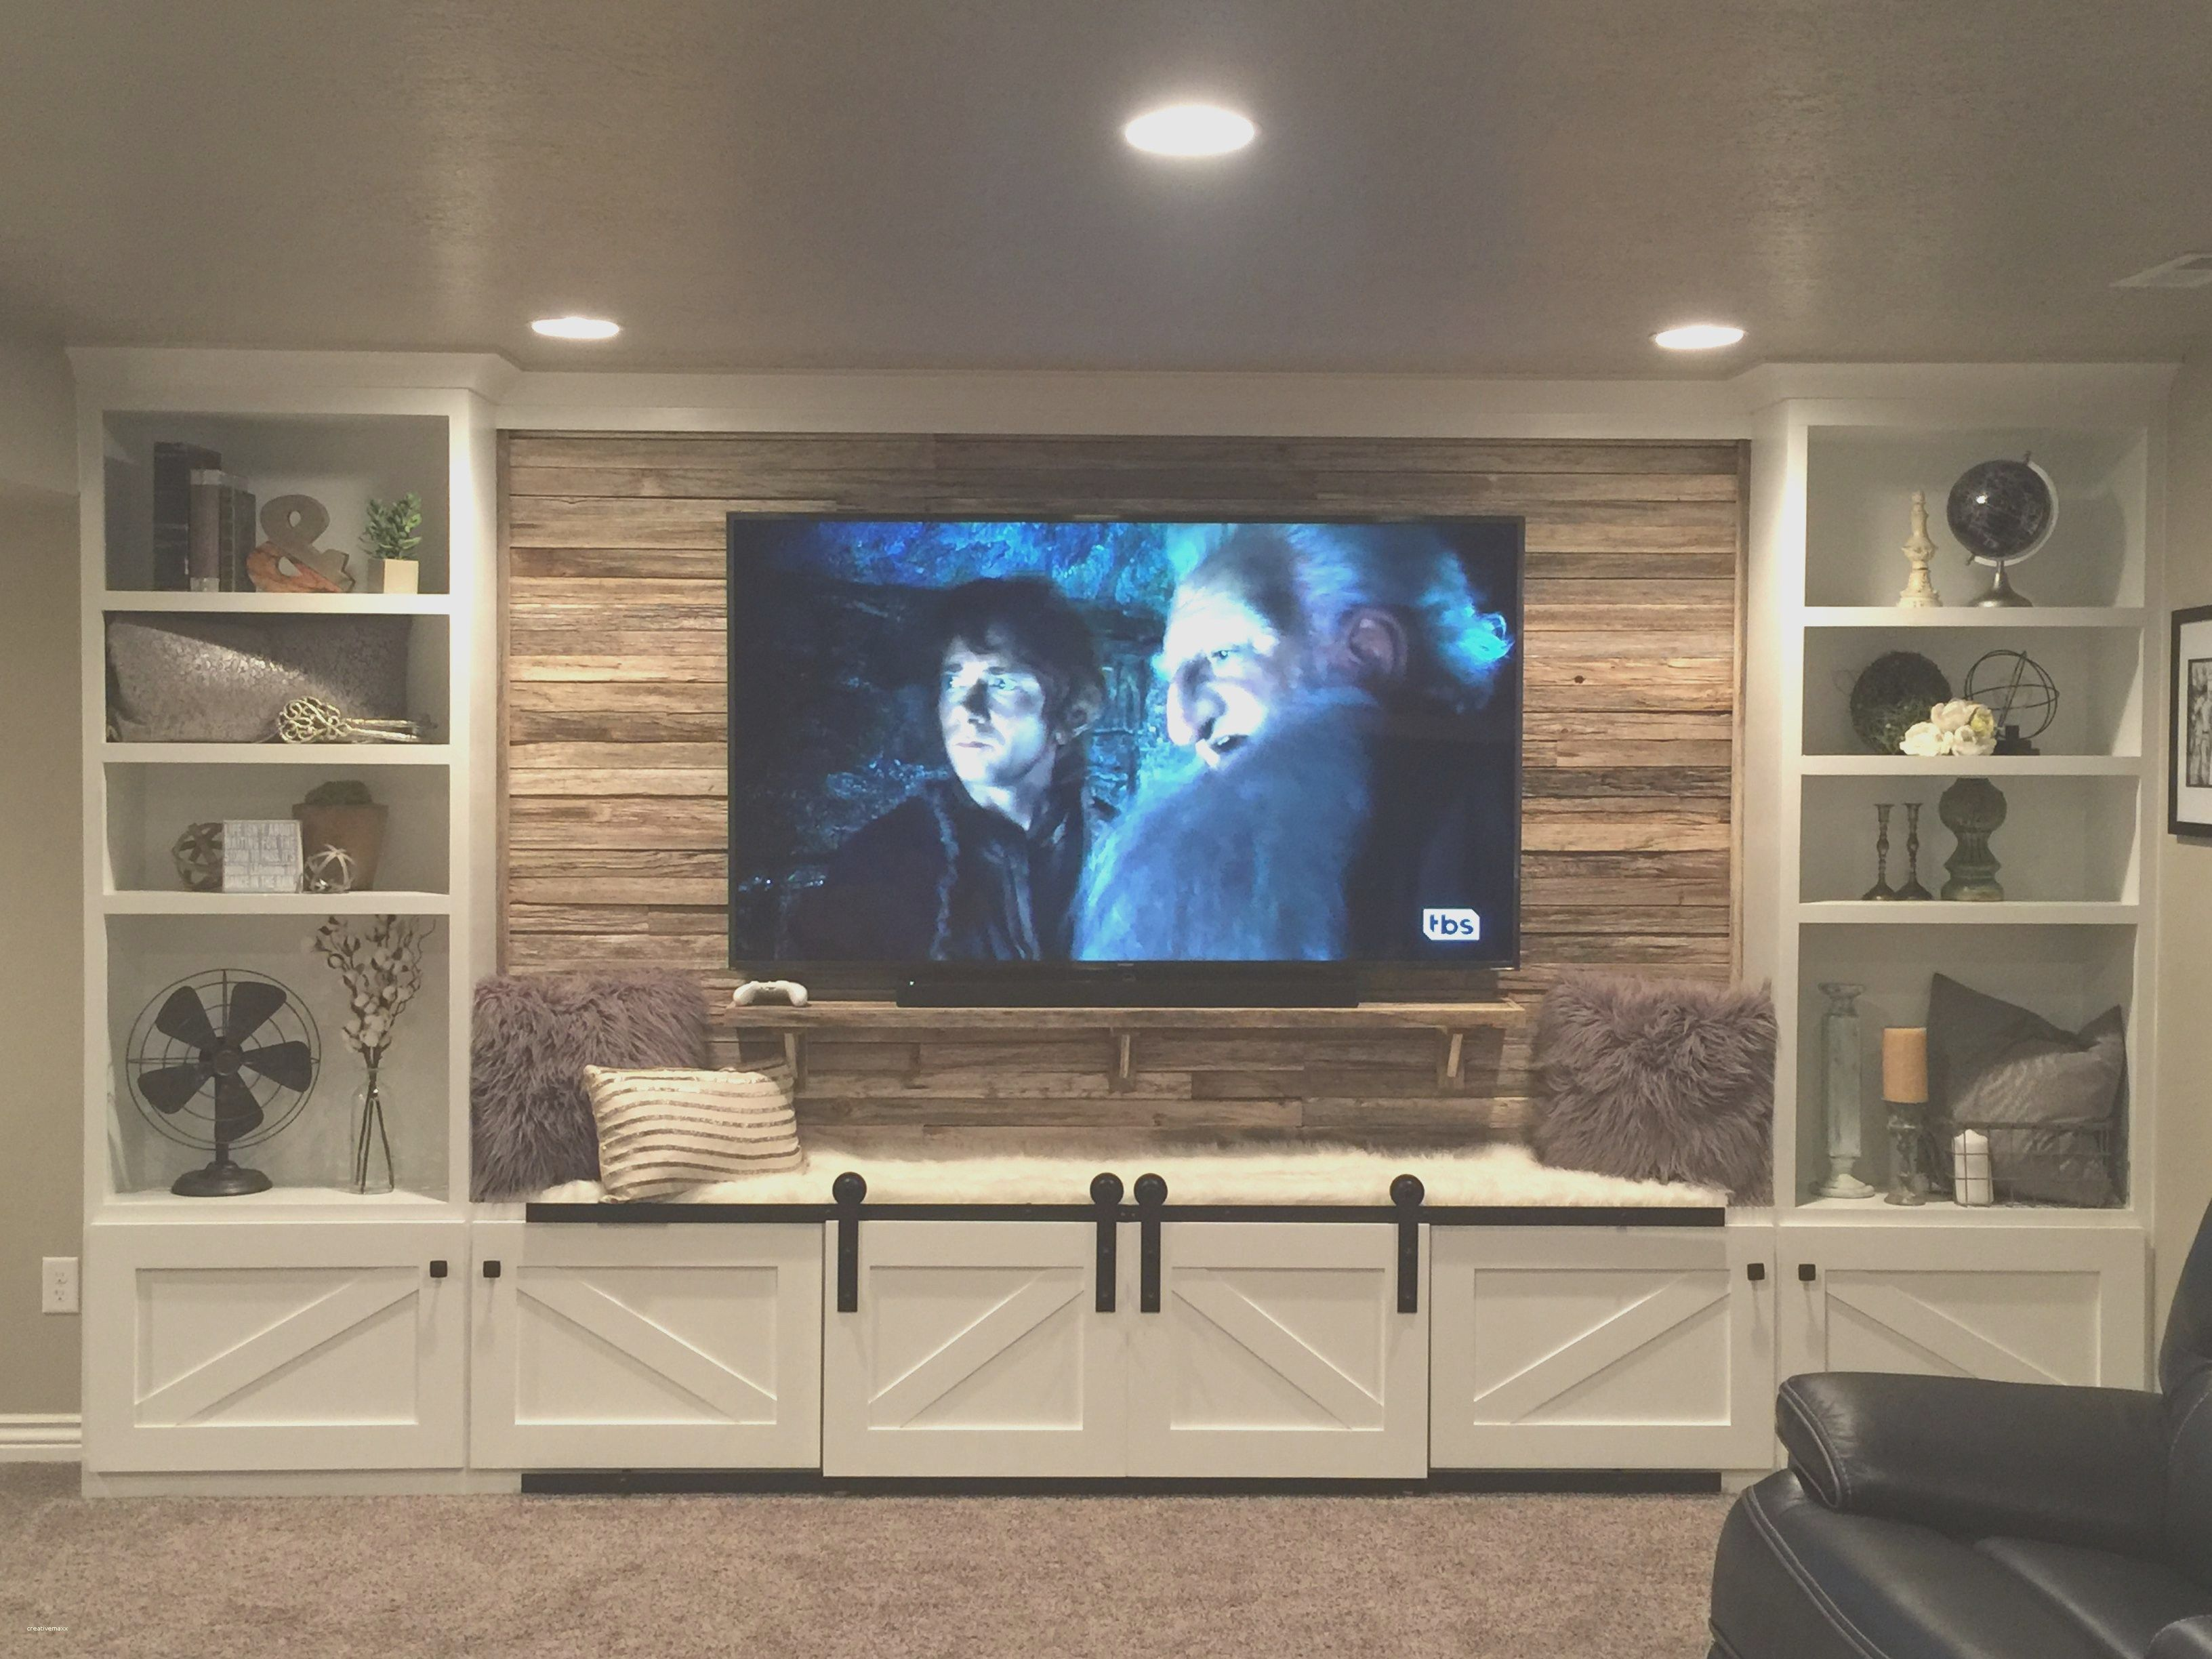 30 Beautiful DIY TV Stand Ideas for Your Room Interior